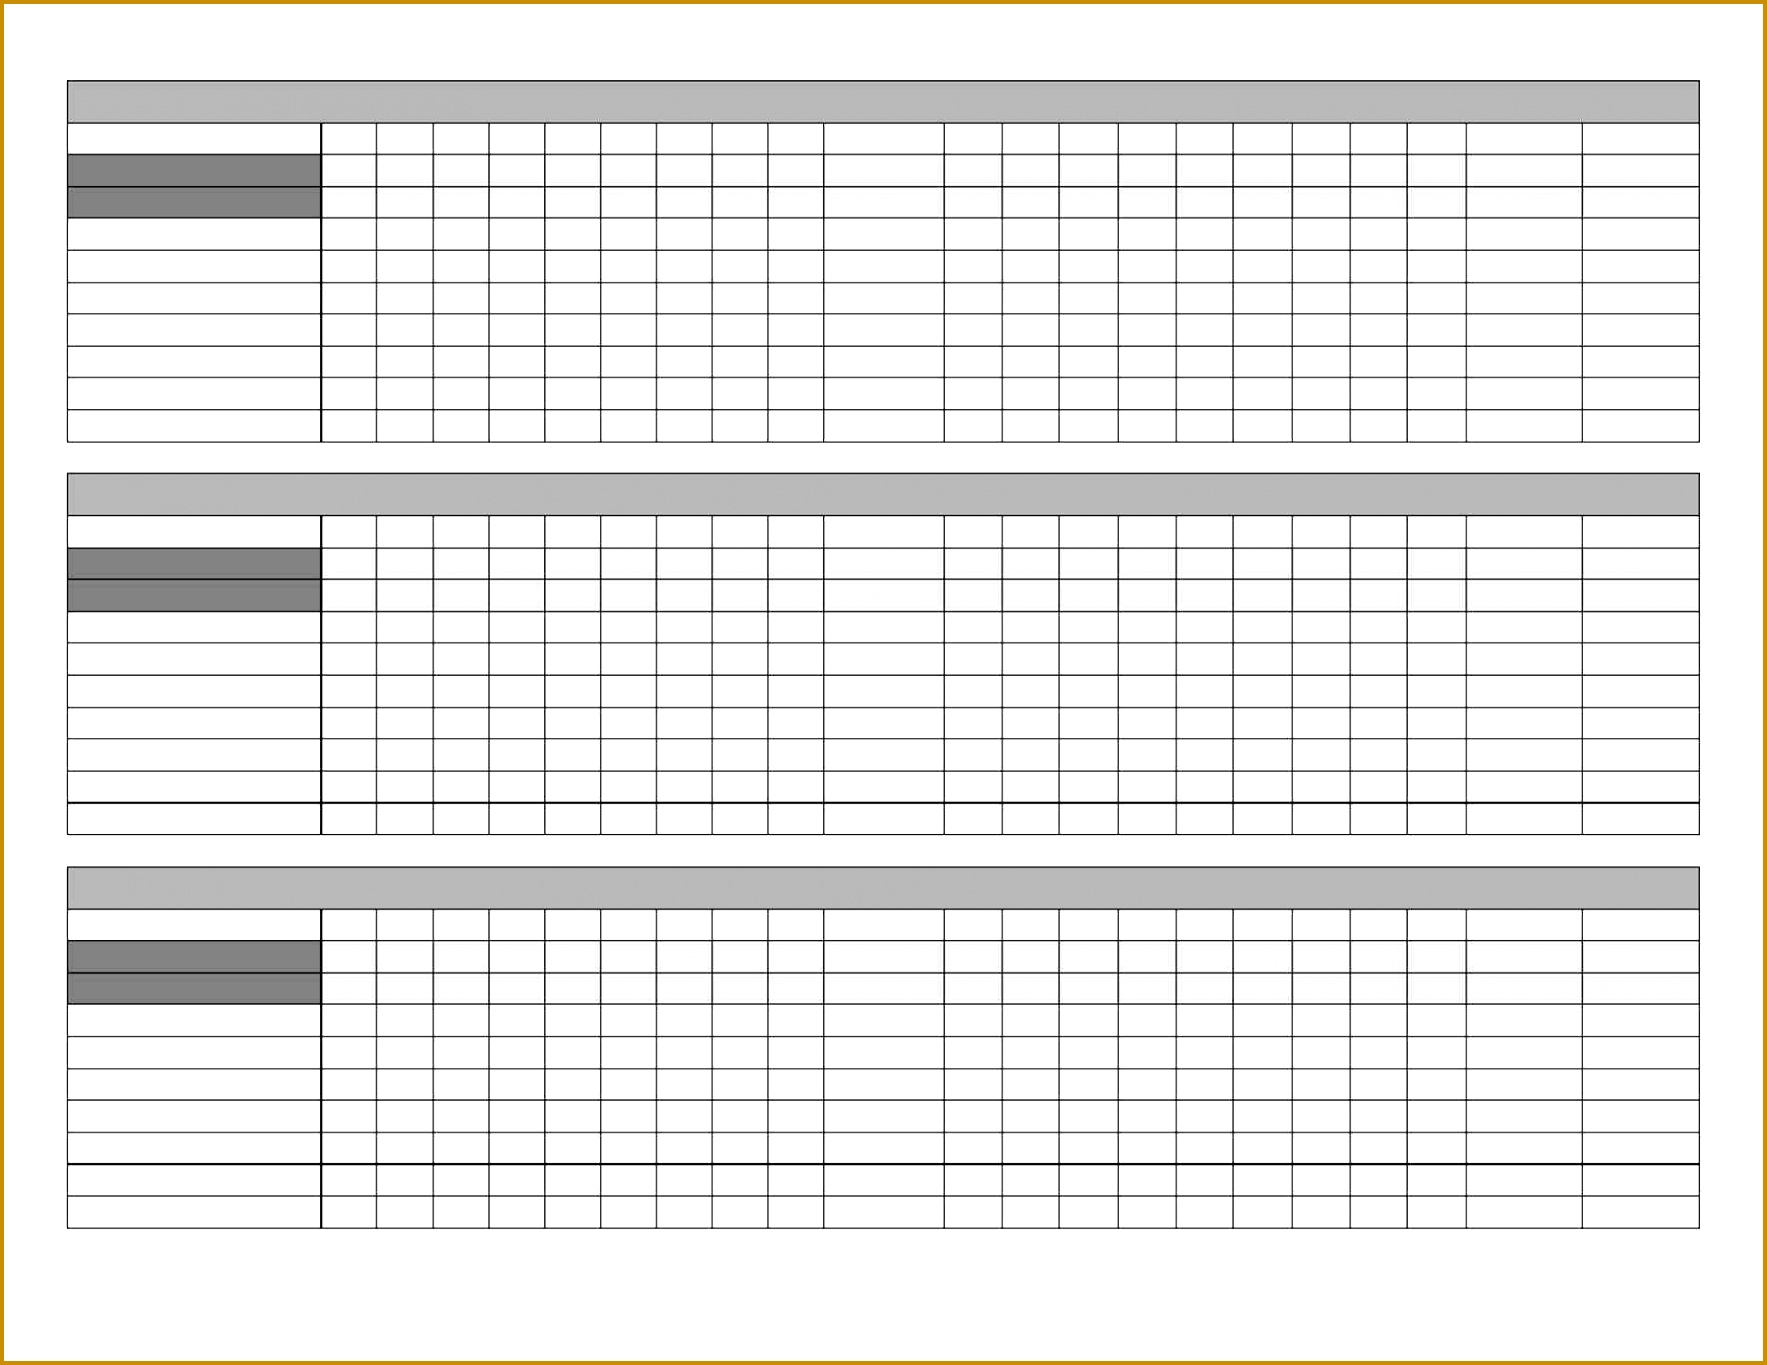 Hr Scorecard Template Excel 60639 Scorecard Template Excel S